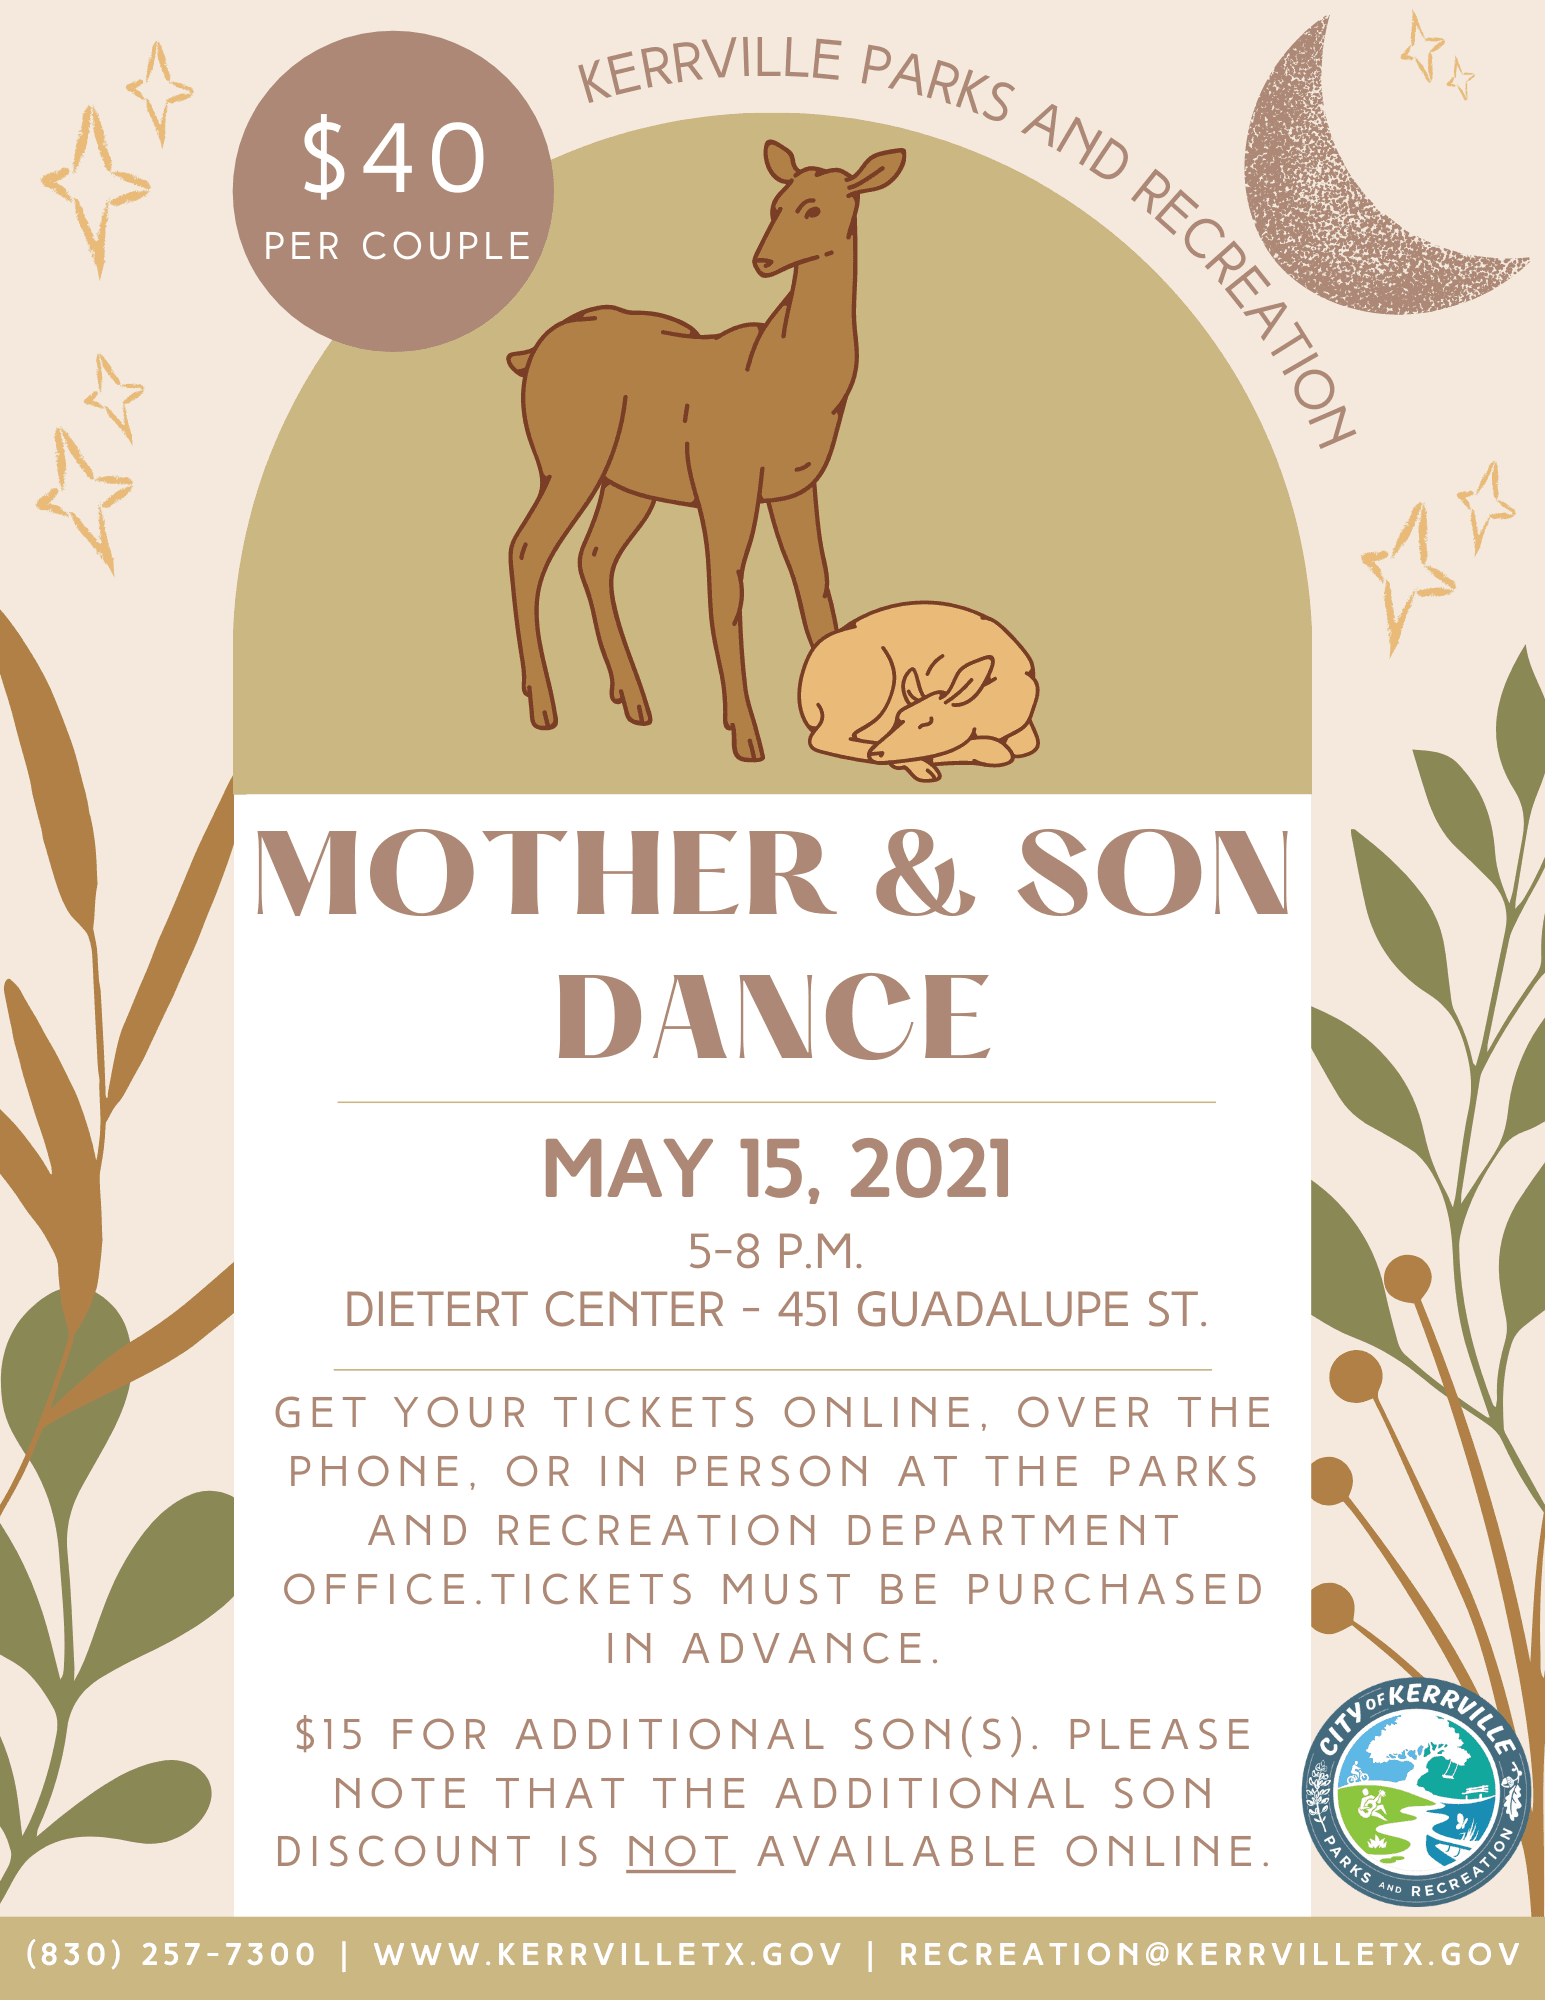 Mother and Son Dance Flyer